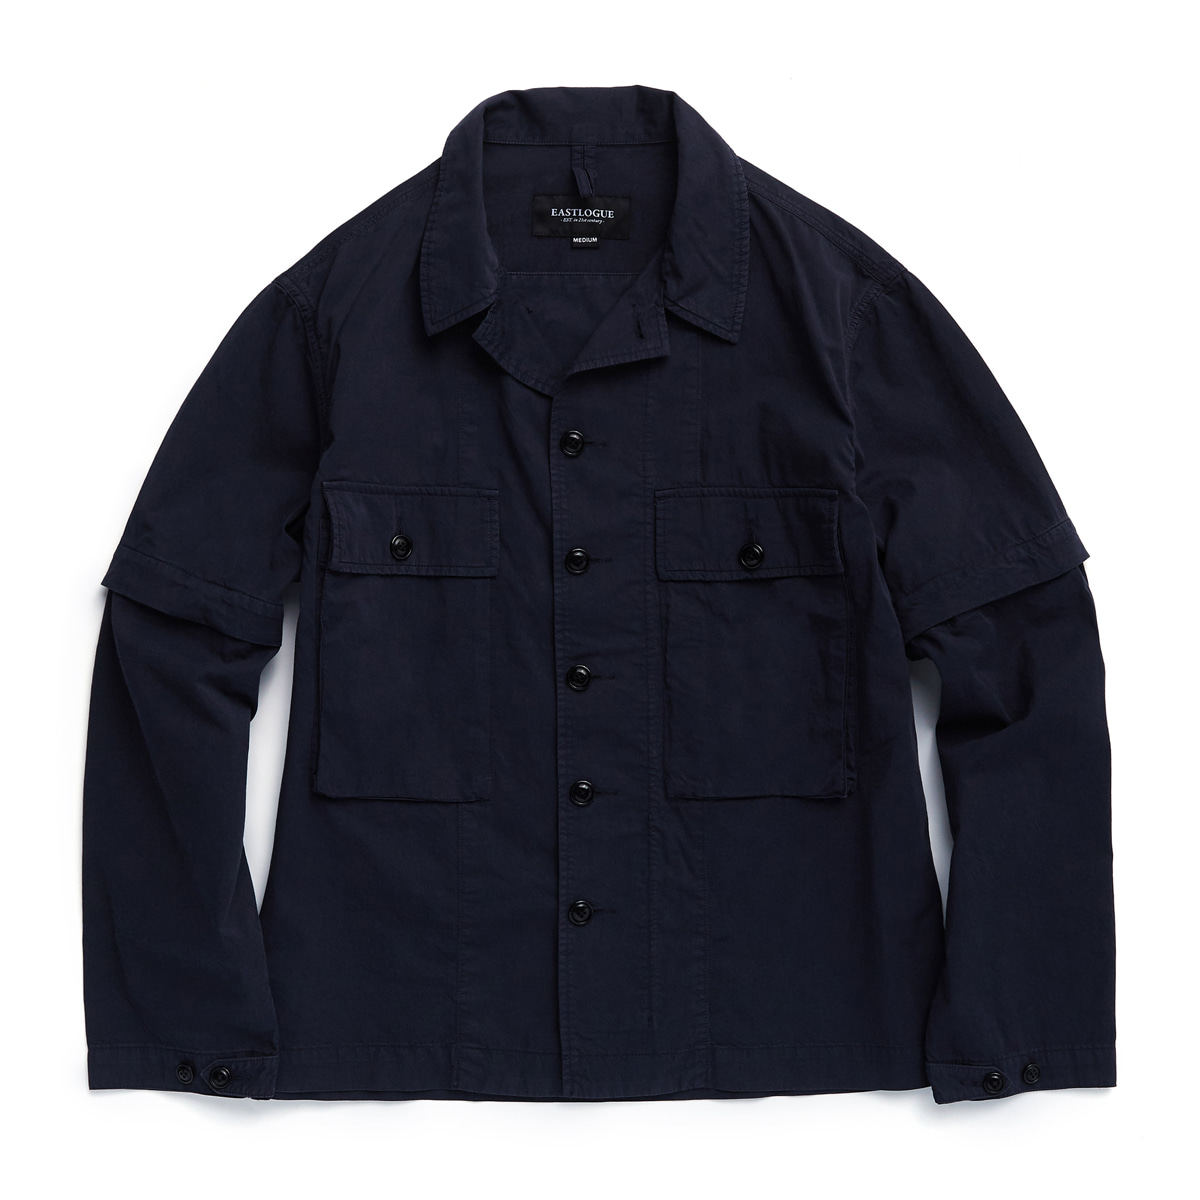 [EASTLOGUE] KW M43 JACKET 'DYED NAVY'